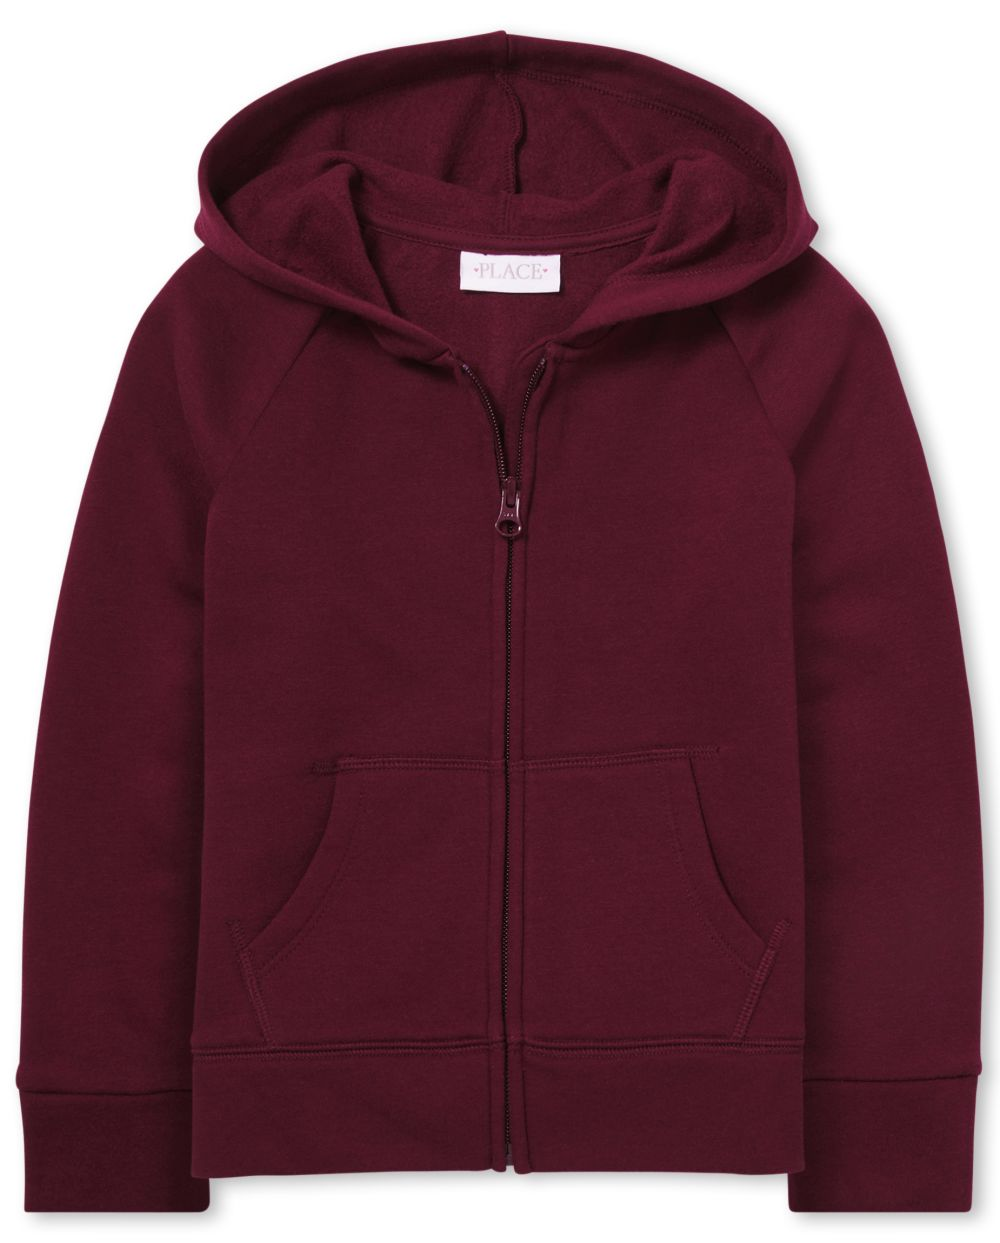 Girls Uniform French Terry Zip Up Hoodie